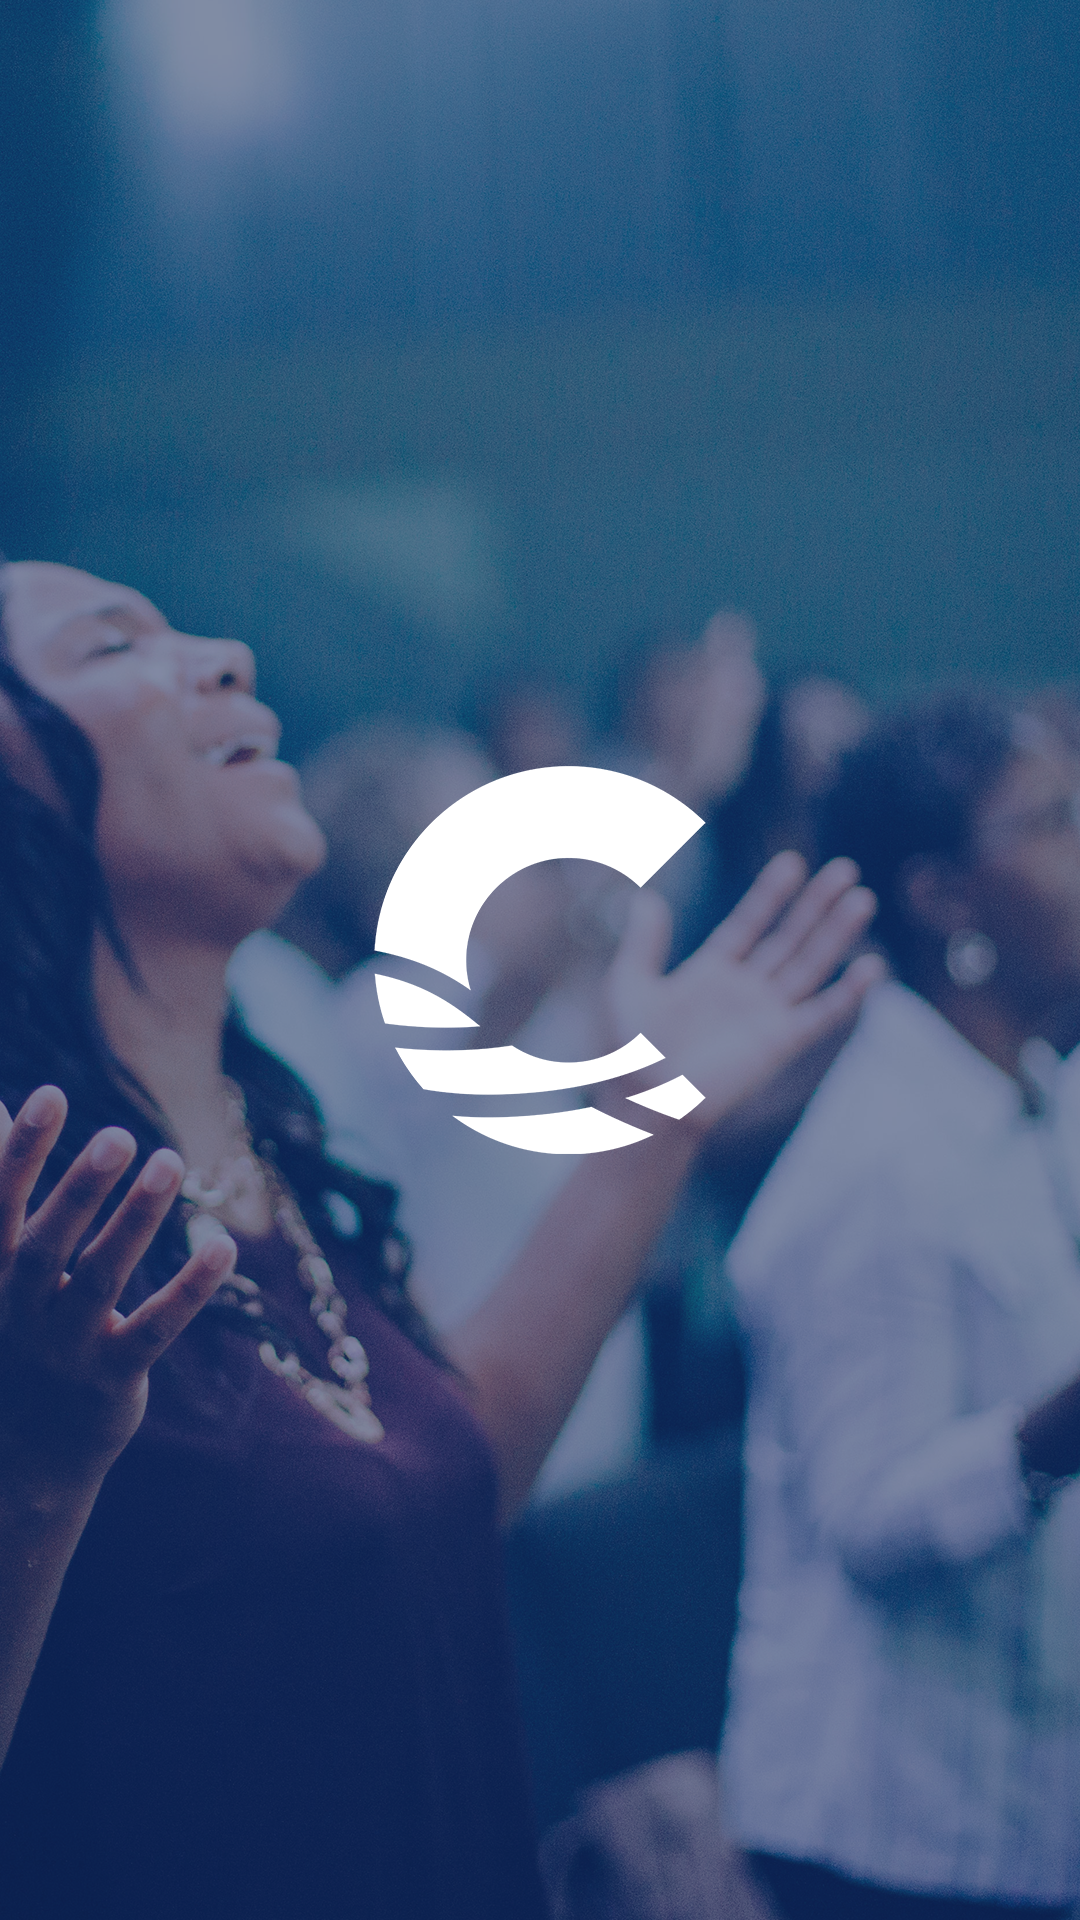 TCC_NEW_WALLPAPERS_WORSHIP3_2018.png